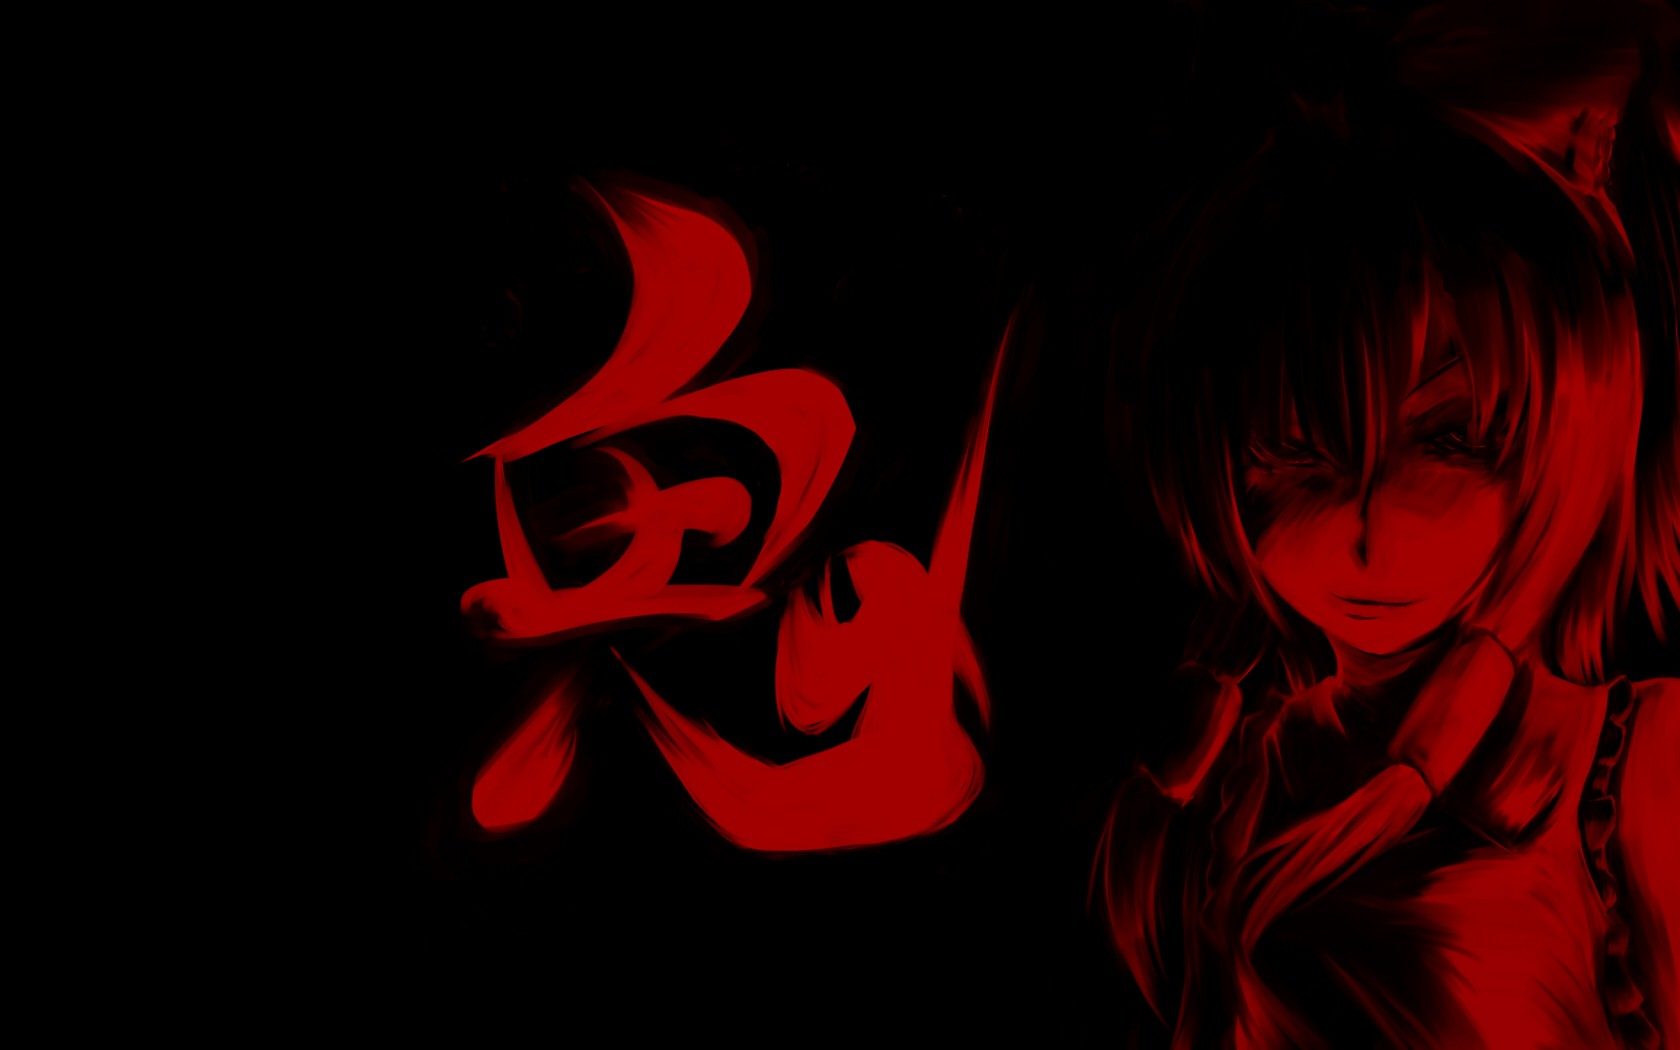 Deadman Wonderland Hd Wallpaper Touhou Wallpaper And Background Image 1680x1050 Id